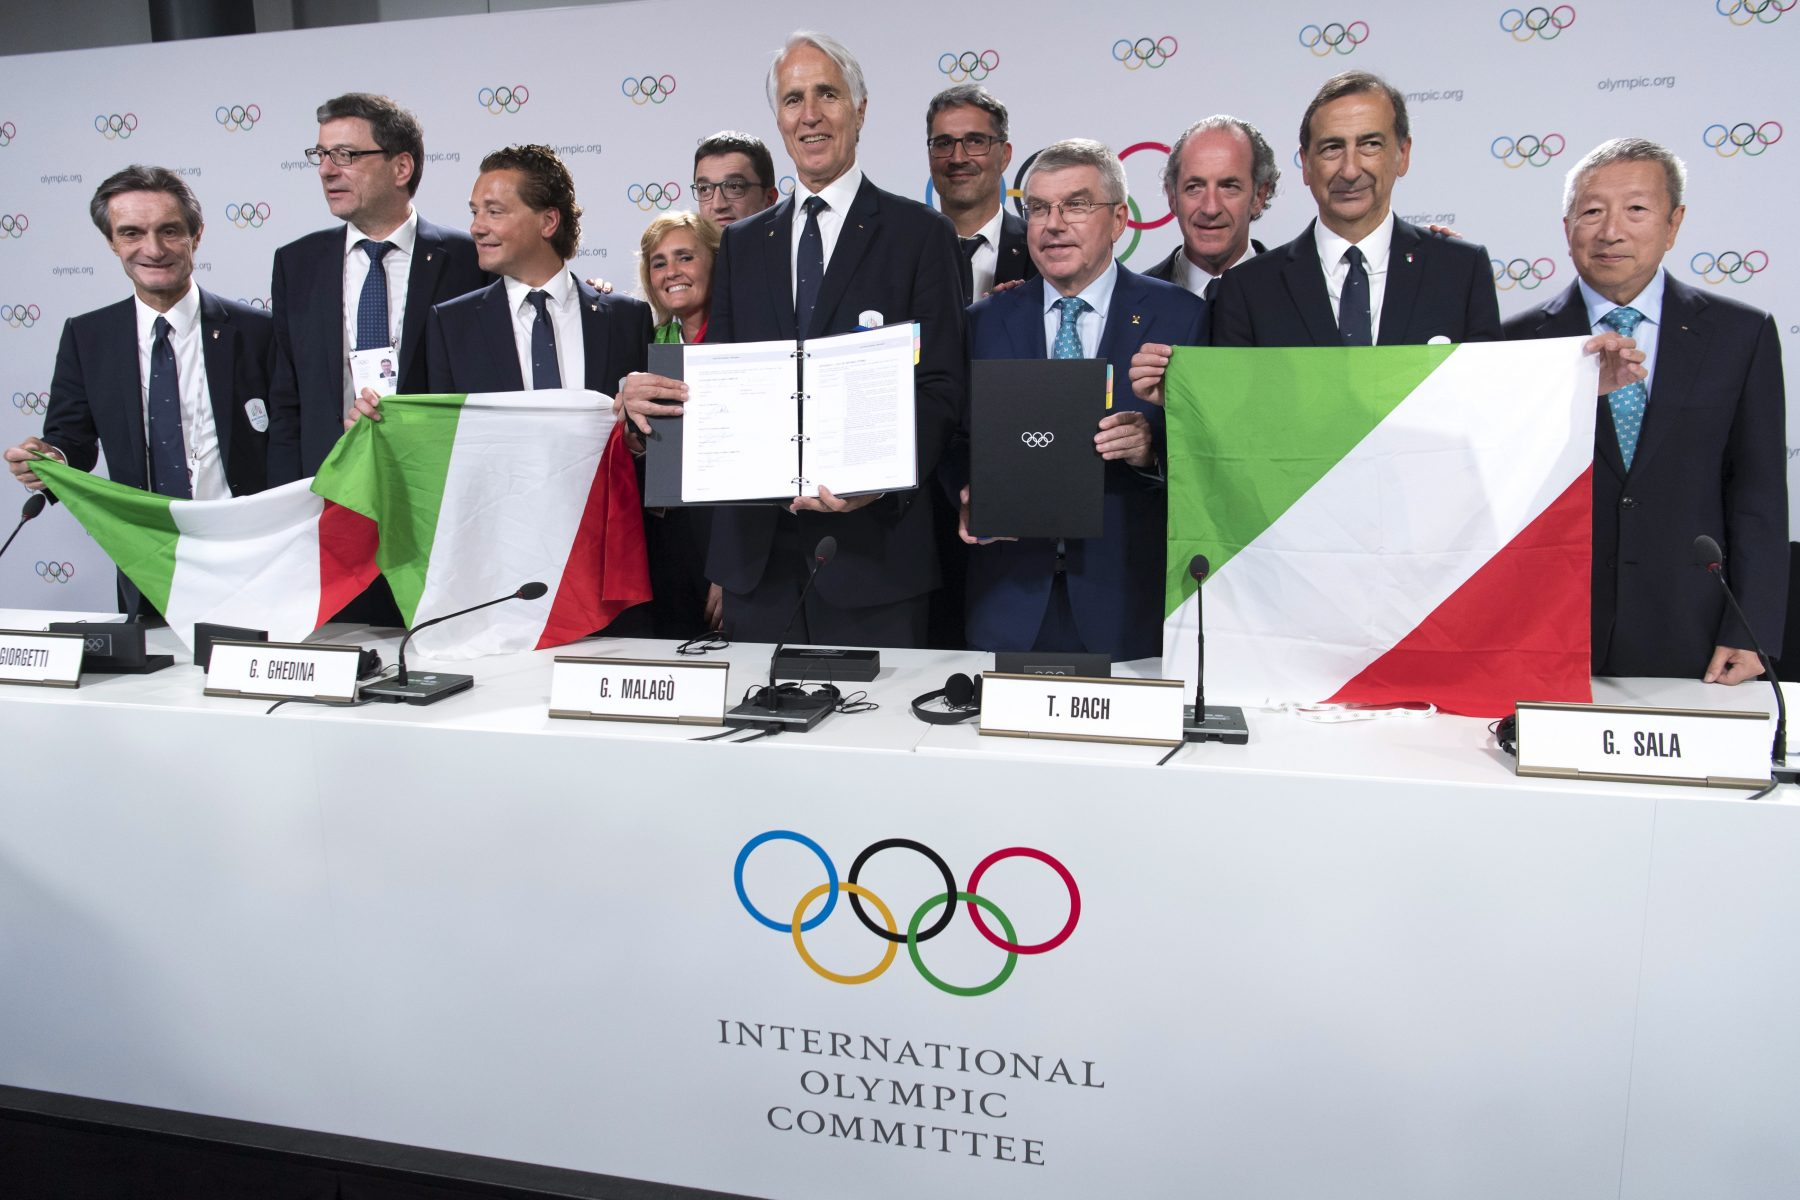 group of people in suits holding italian flags at IOC press conference